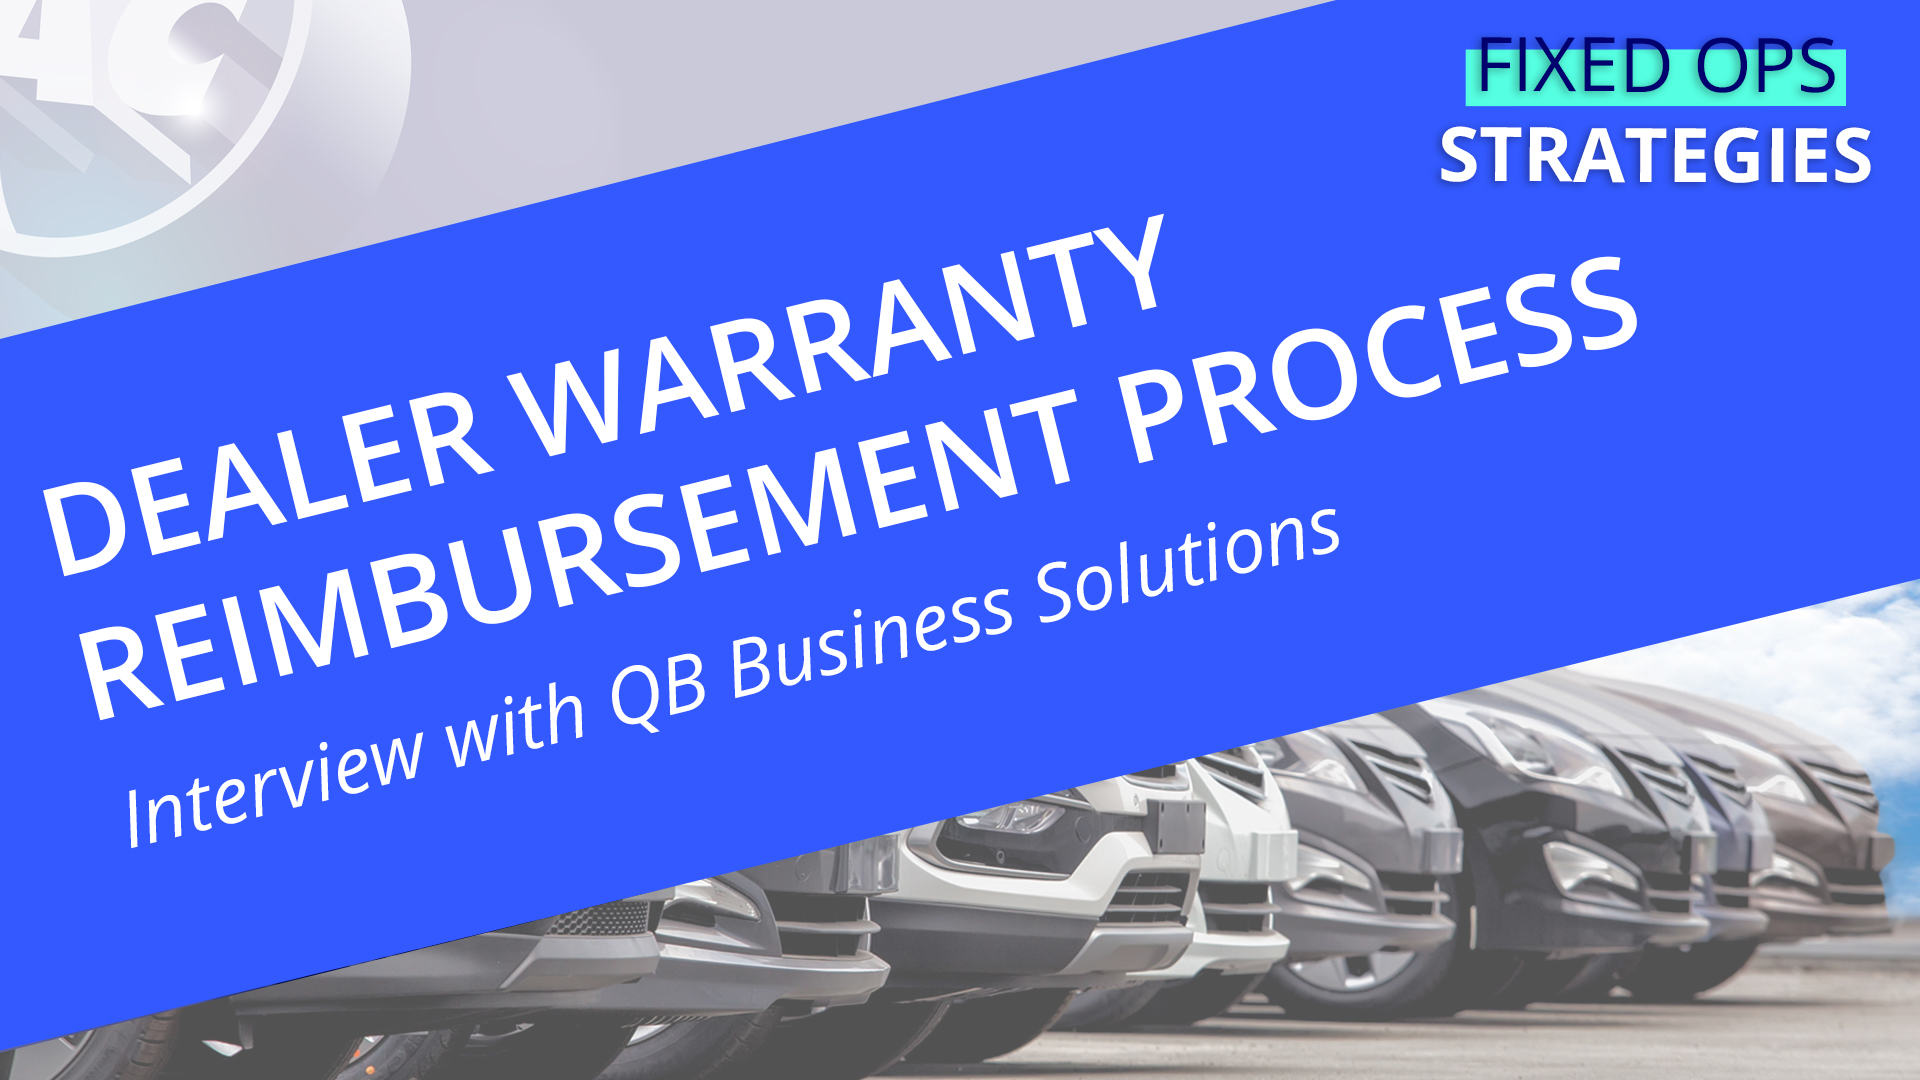 Auto Dealer Warranty Reimbursement Process – Interview with QB Business Solutions [VIDEO]